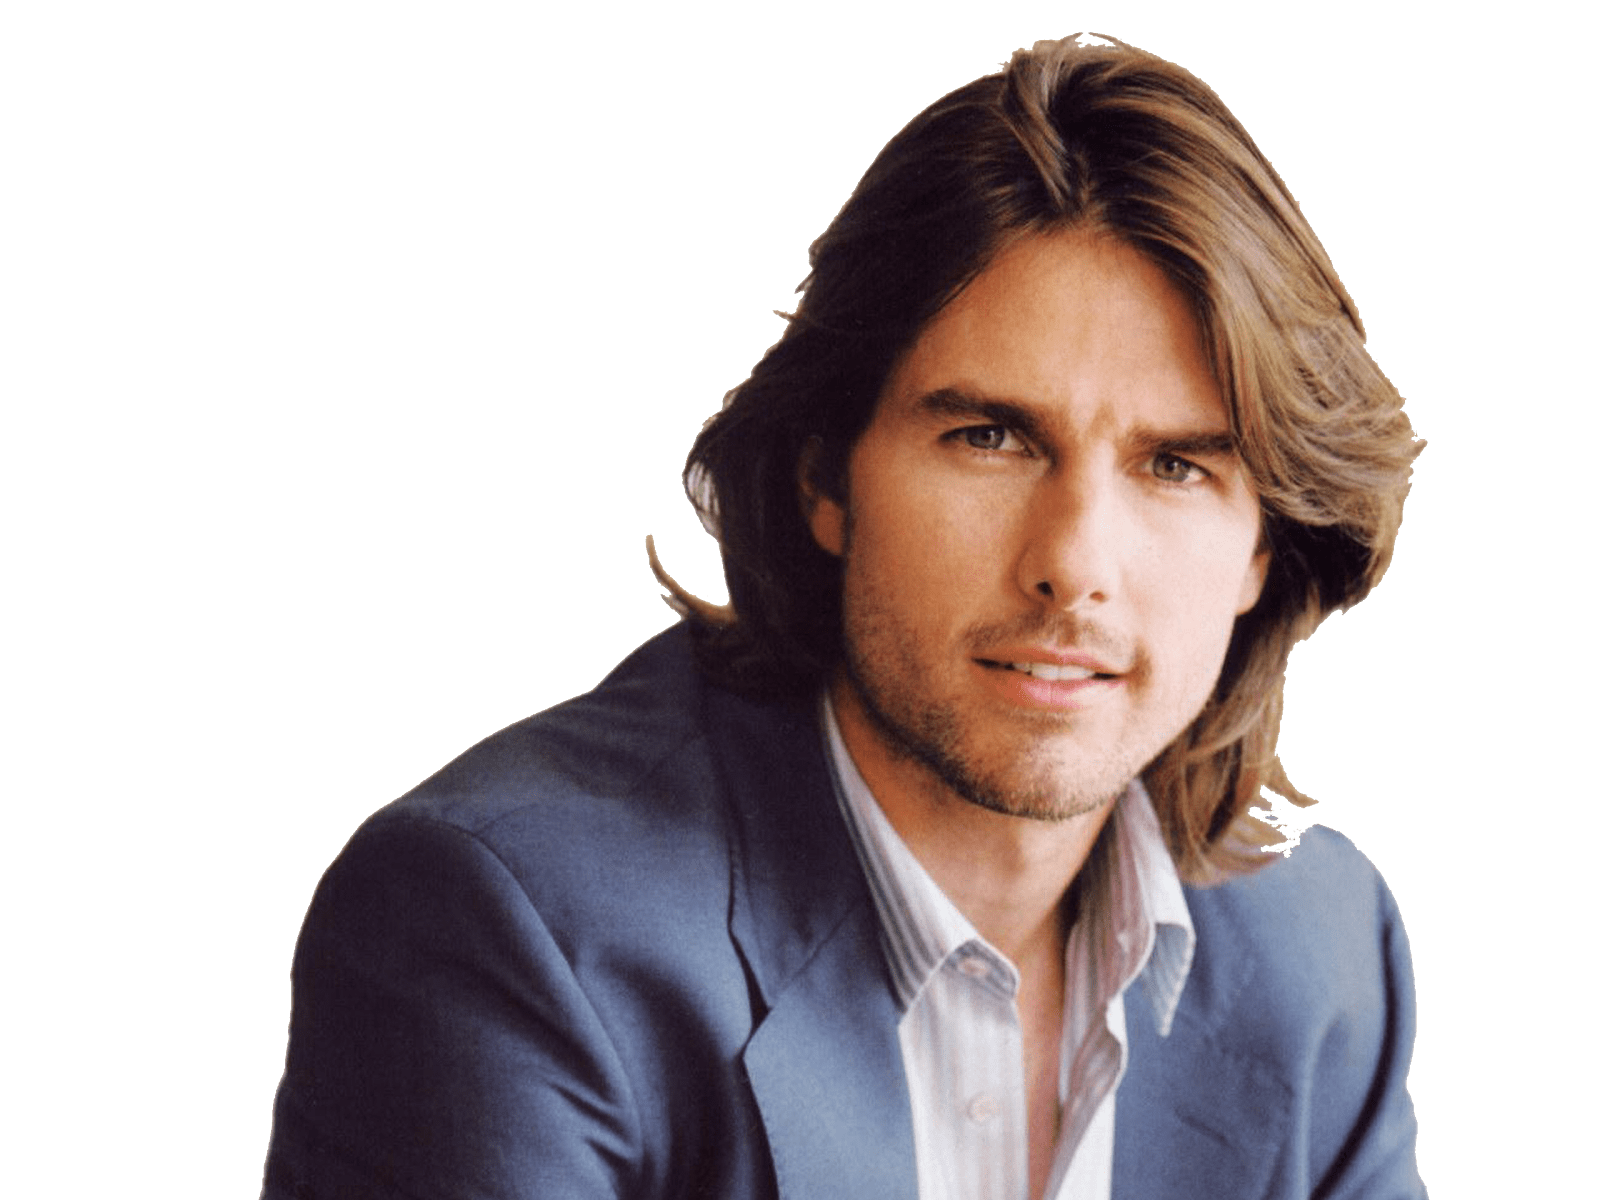 Tom Cruise PNG-PlusPNG.com-1600 - Tom Cruise PNG